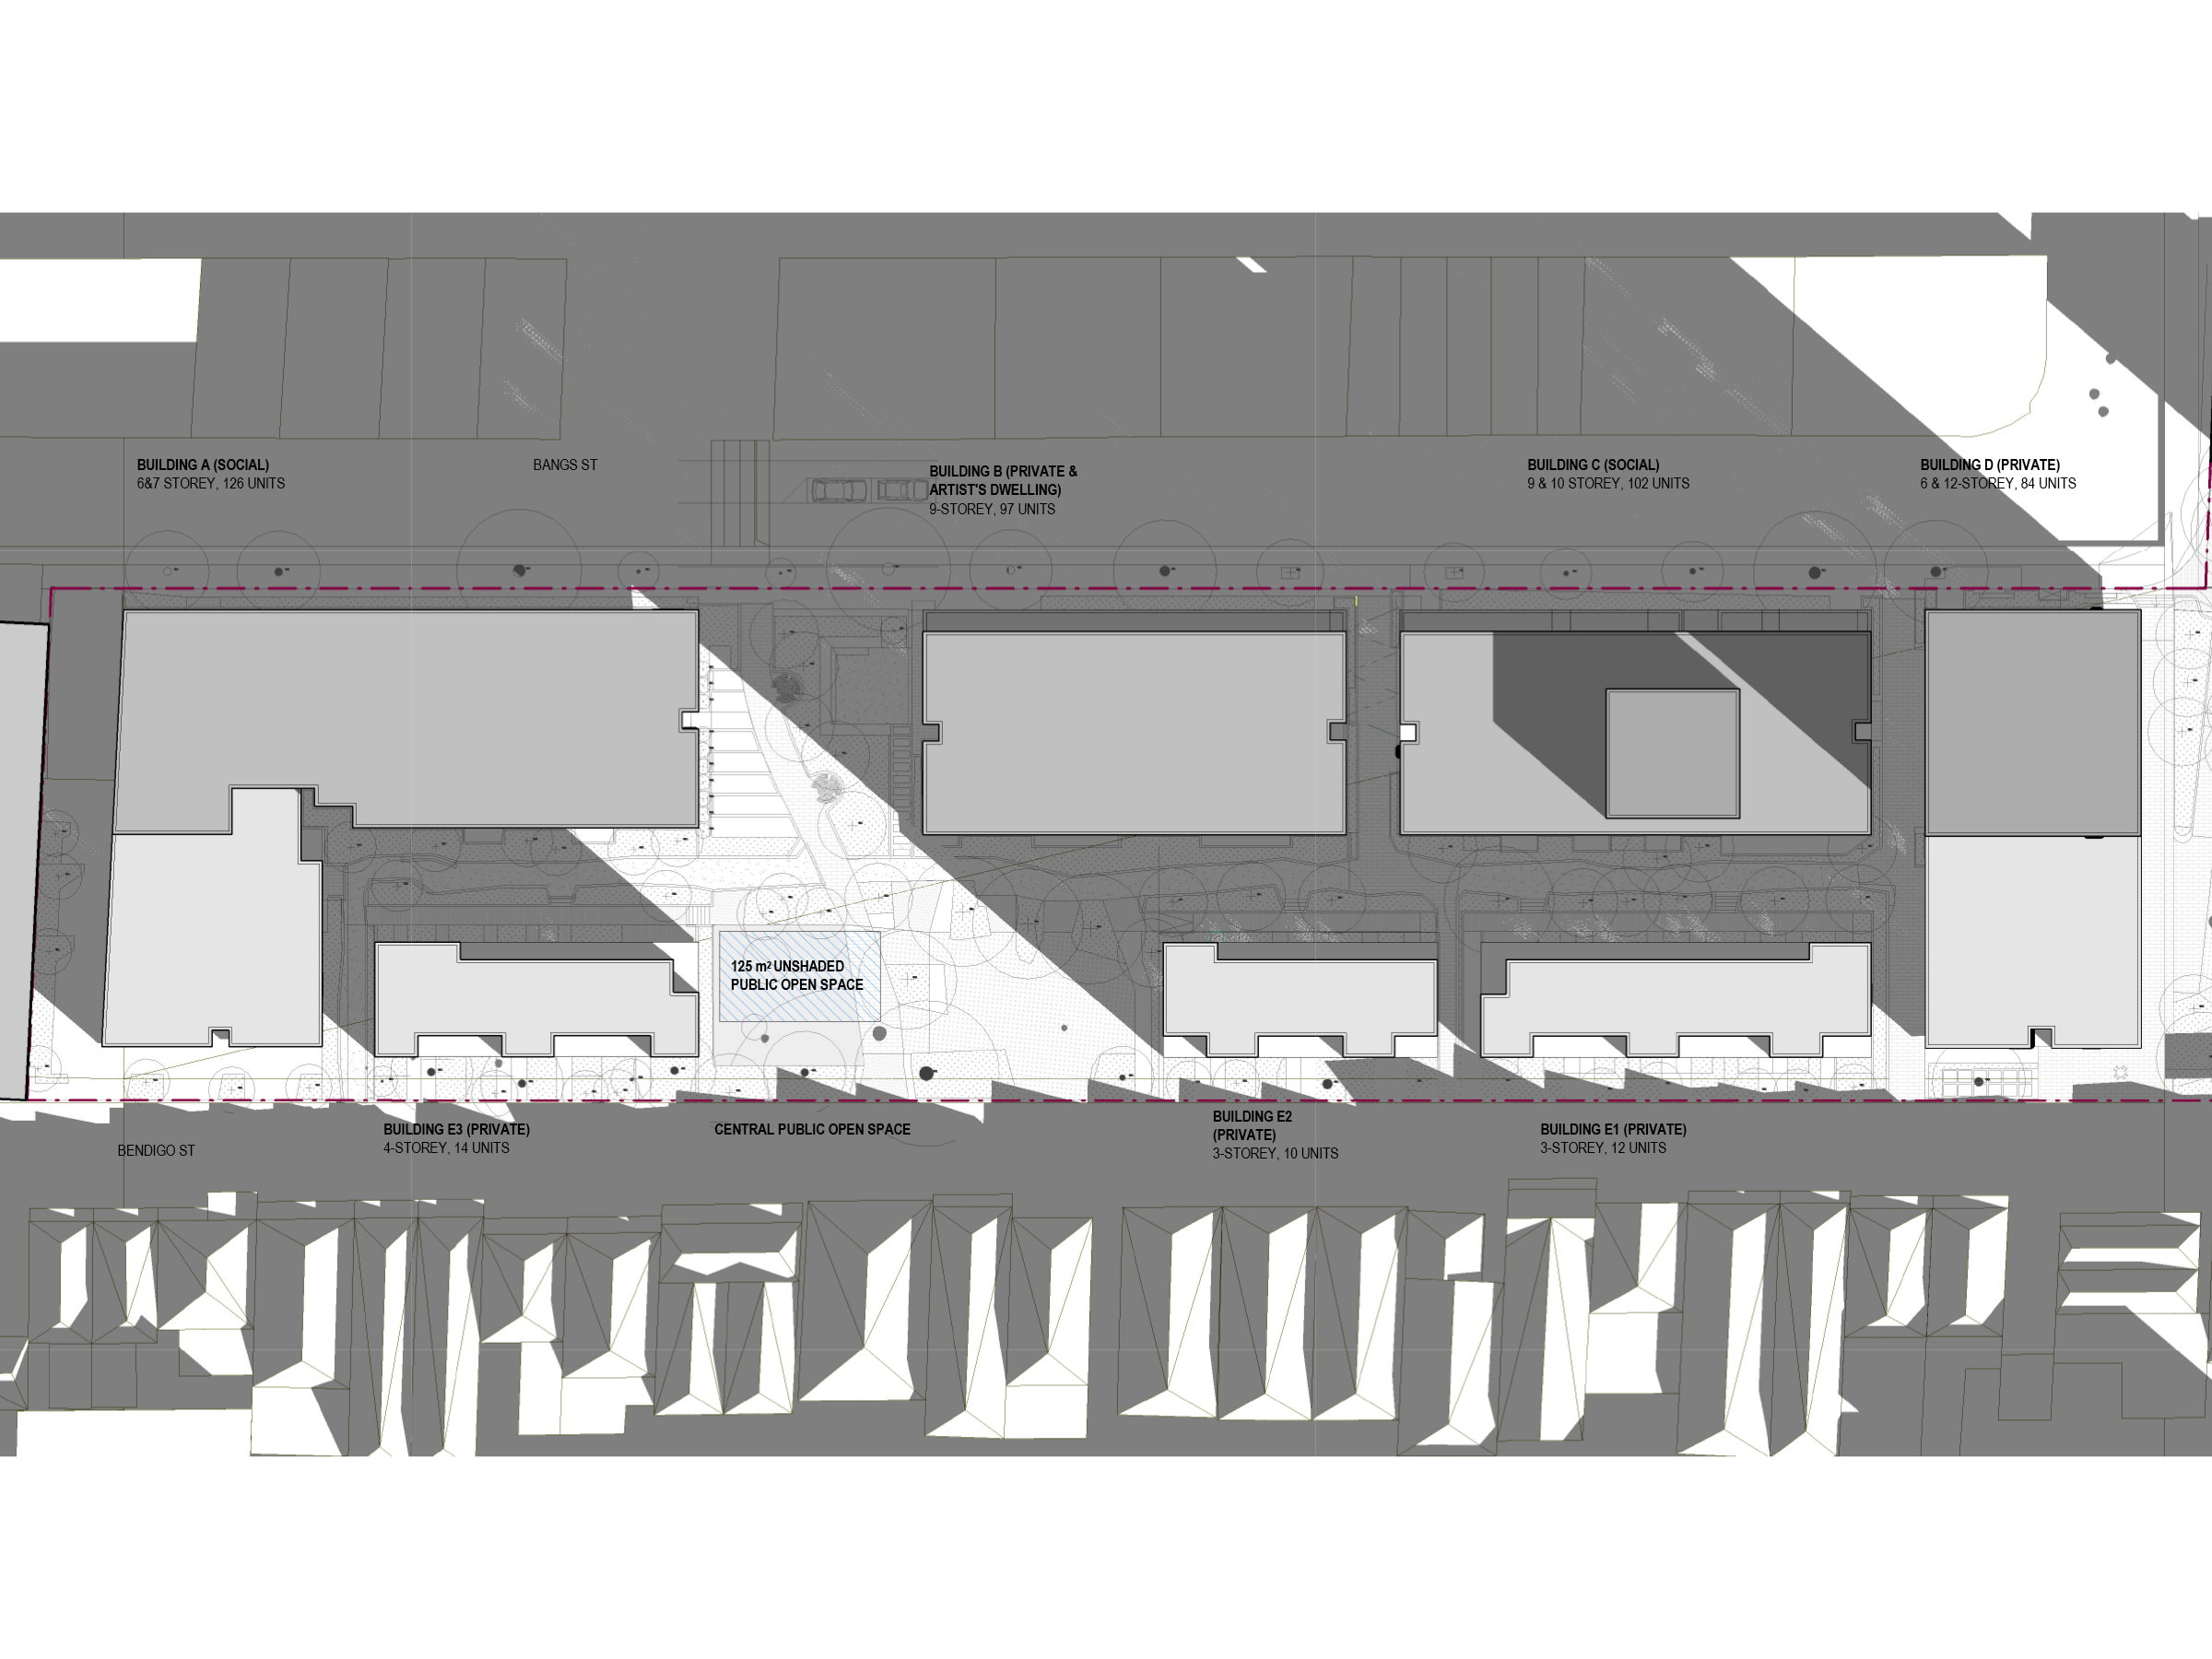 Diagram showing the shadows created by the new development in June at 9am